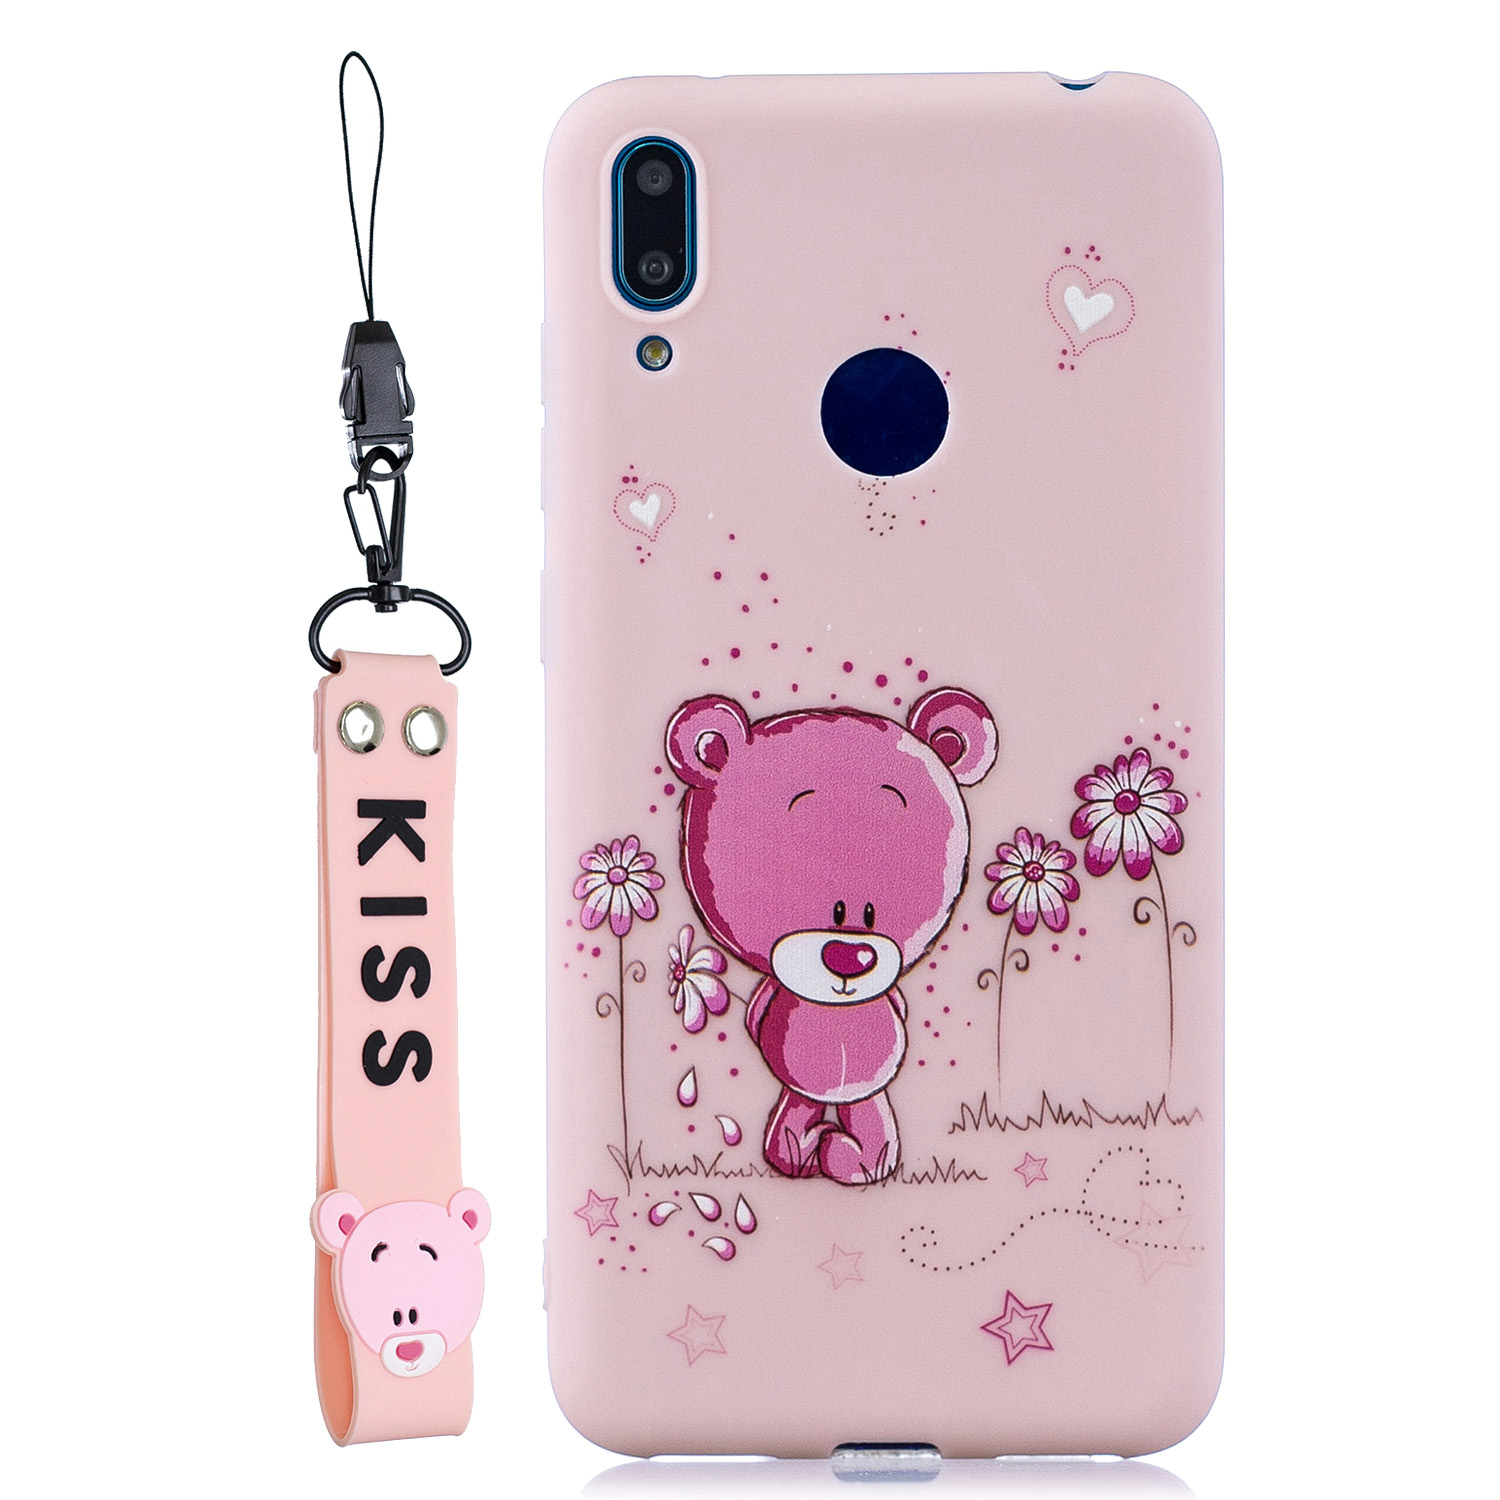 For HUAWEI Y7 2019 Cute Coloured Painted TPU Anti-scratch Non-slip Protective Cover Back Case with Lanyard Light pink